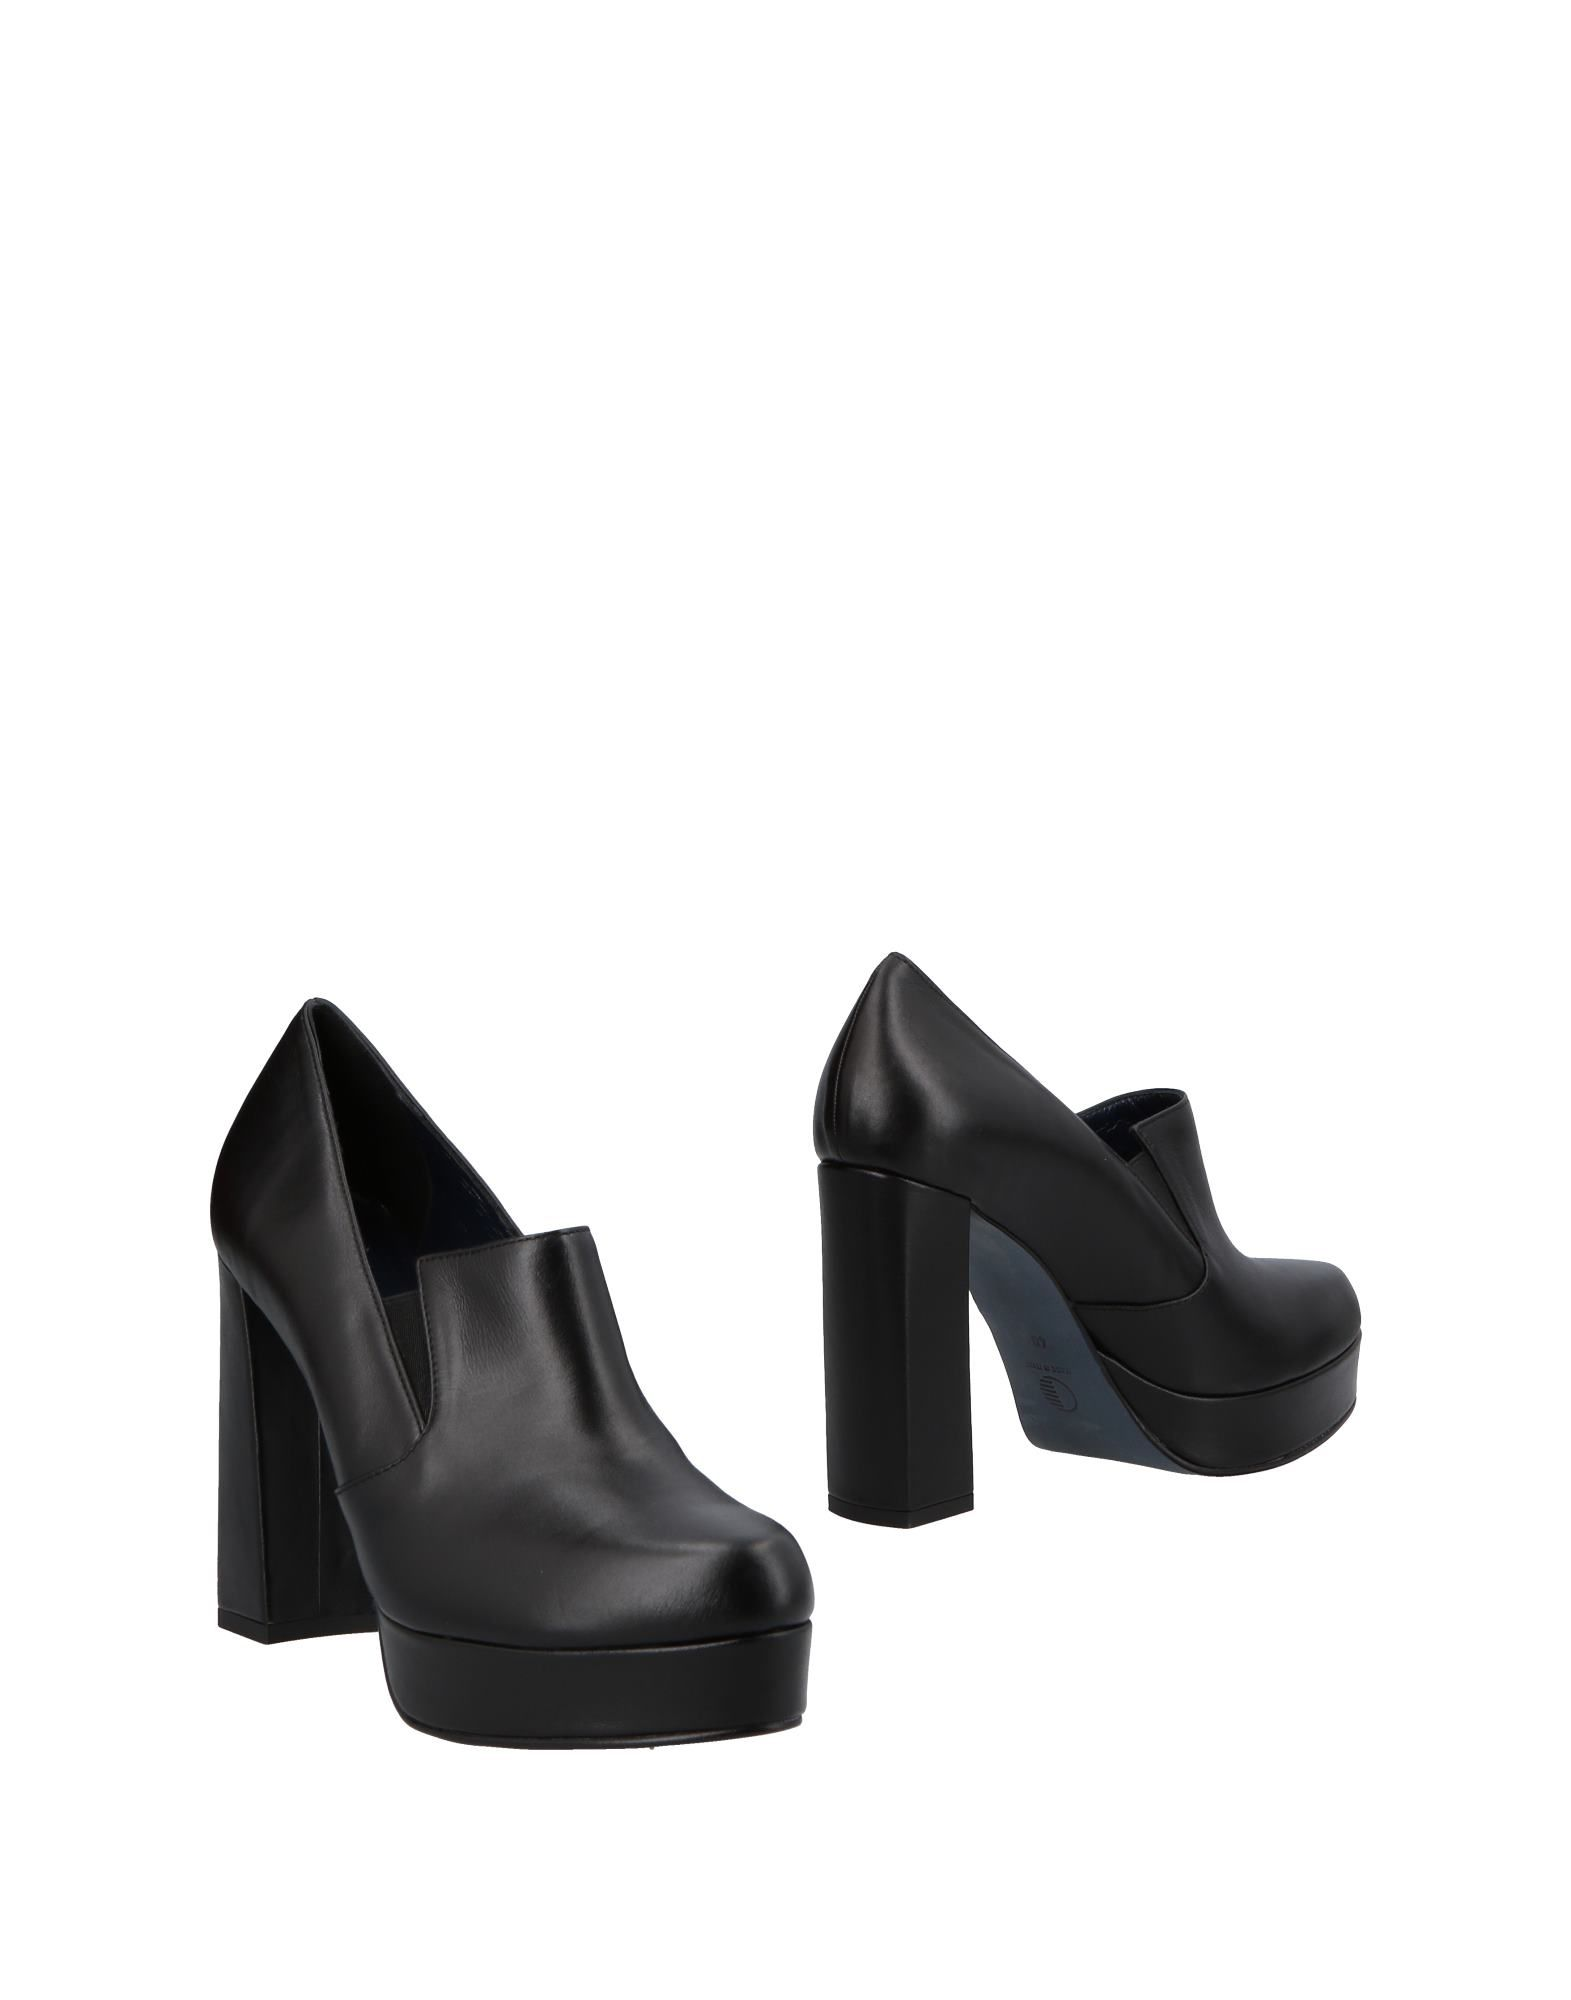 ANTEPRIMA Ankle Boot in Black